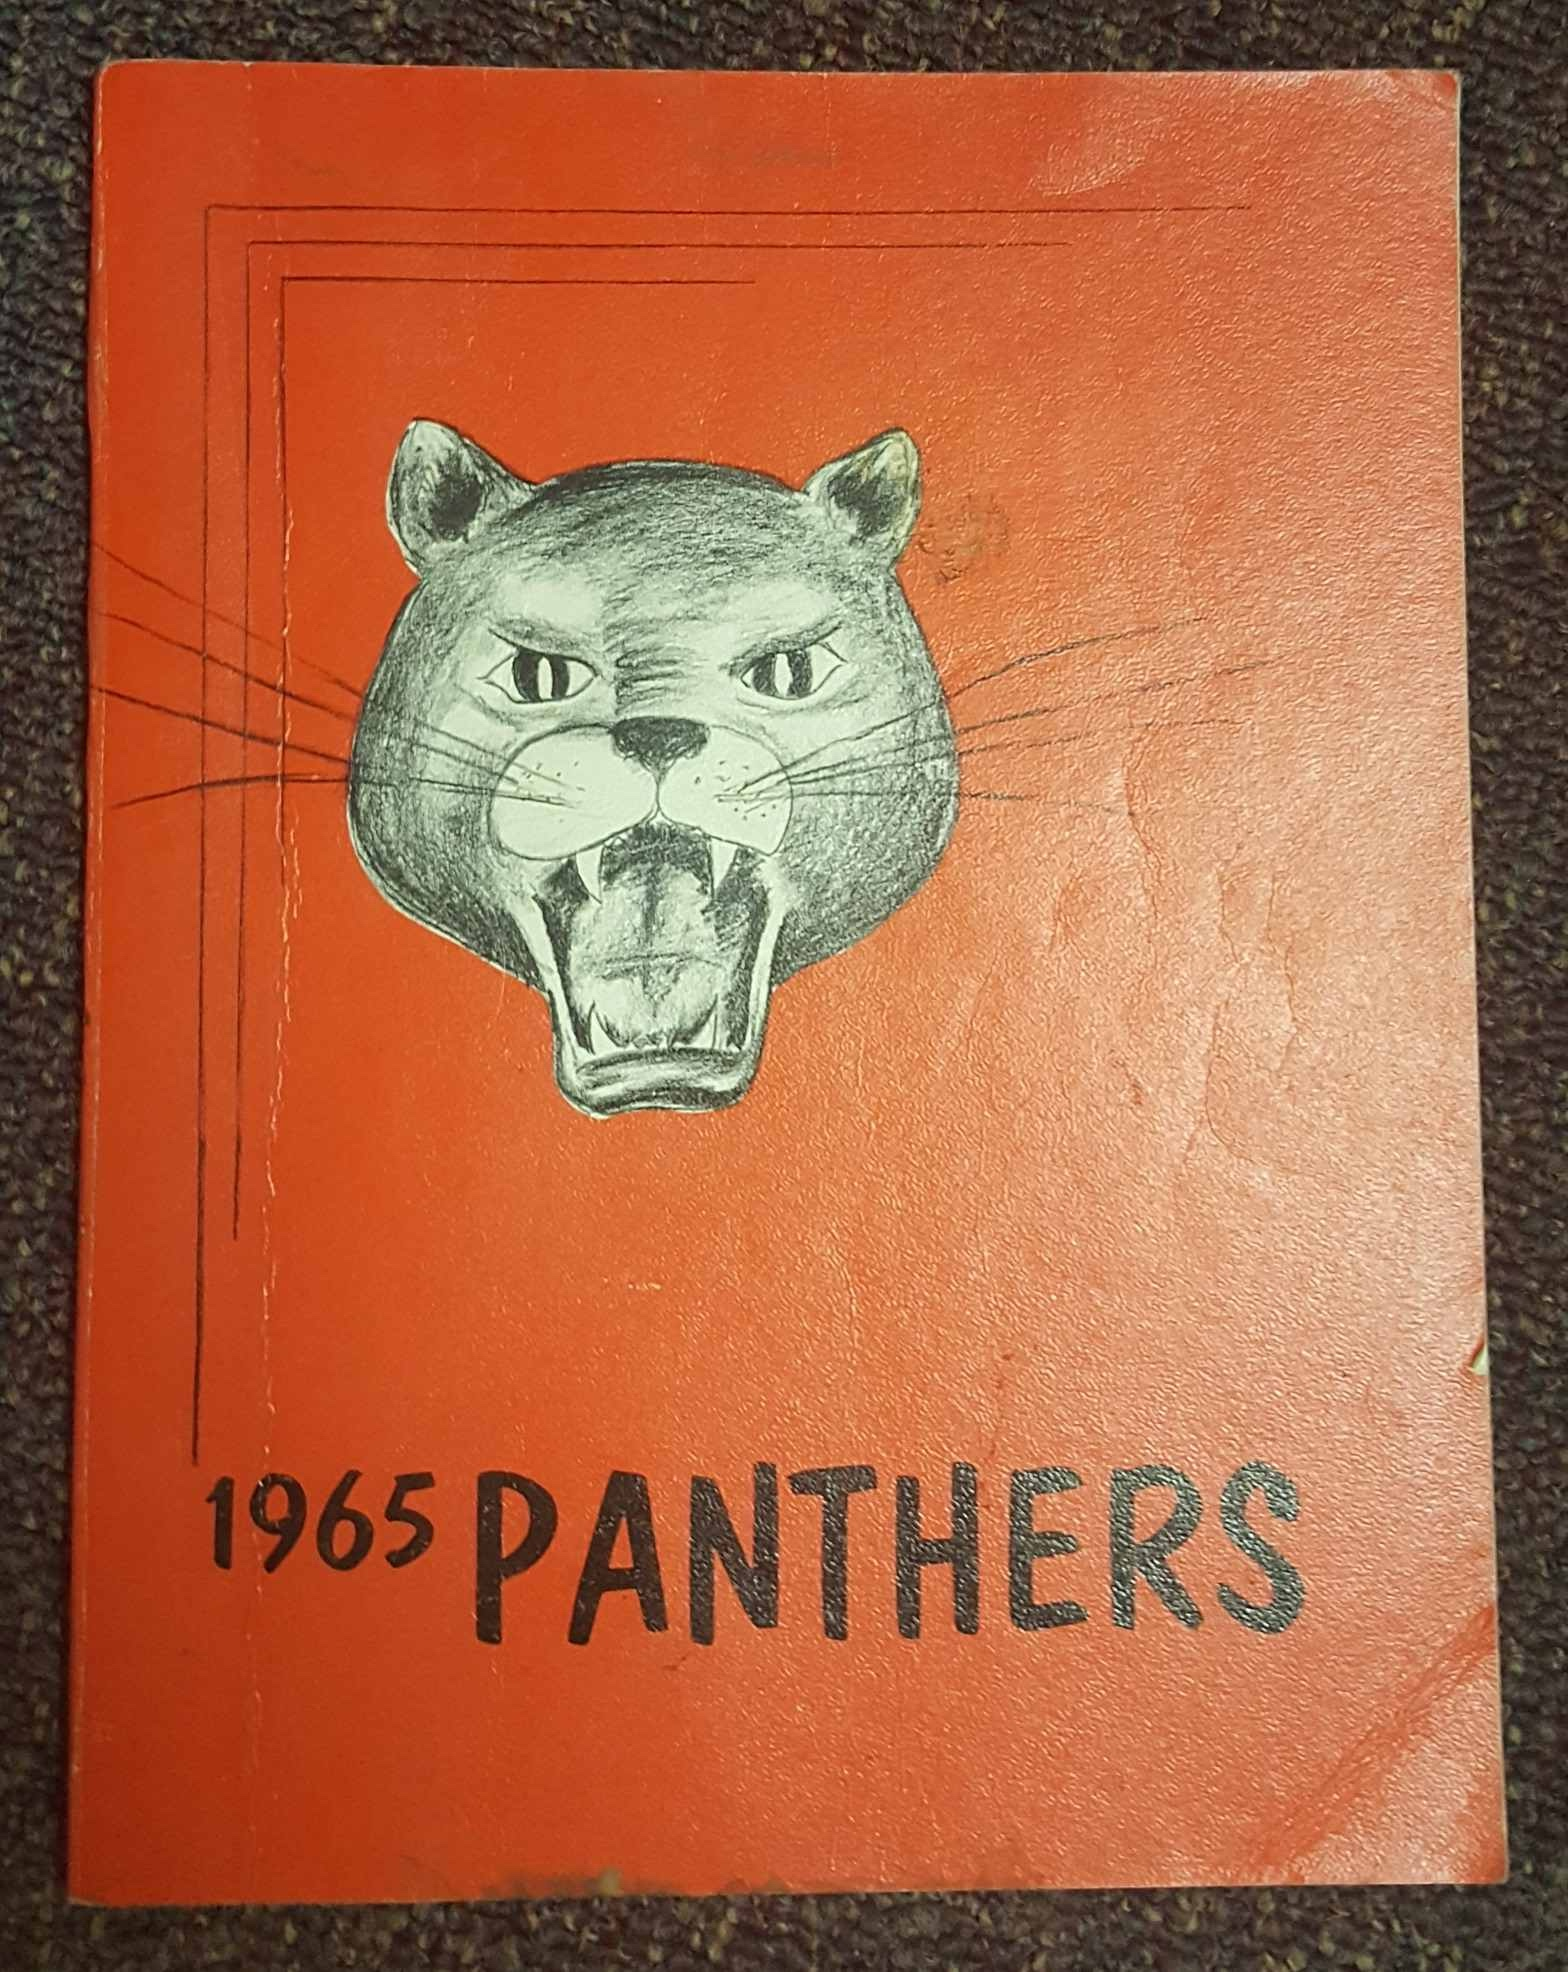 Image for Panthers 1965 - Lincoln Junior High School Yearbook (Orem, UT)